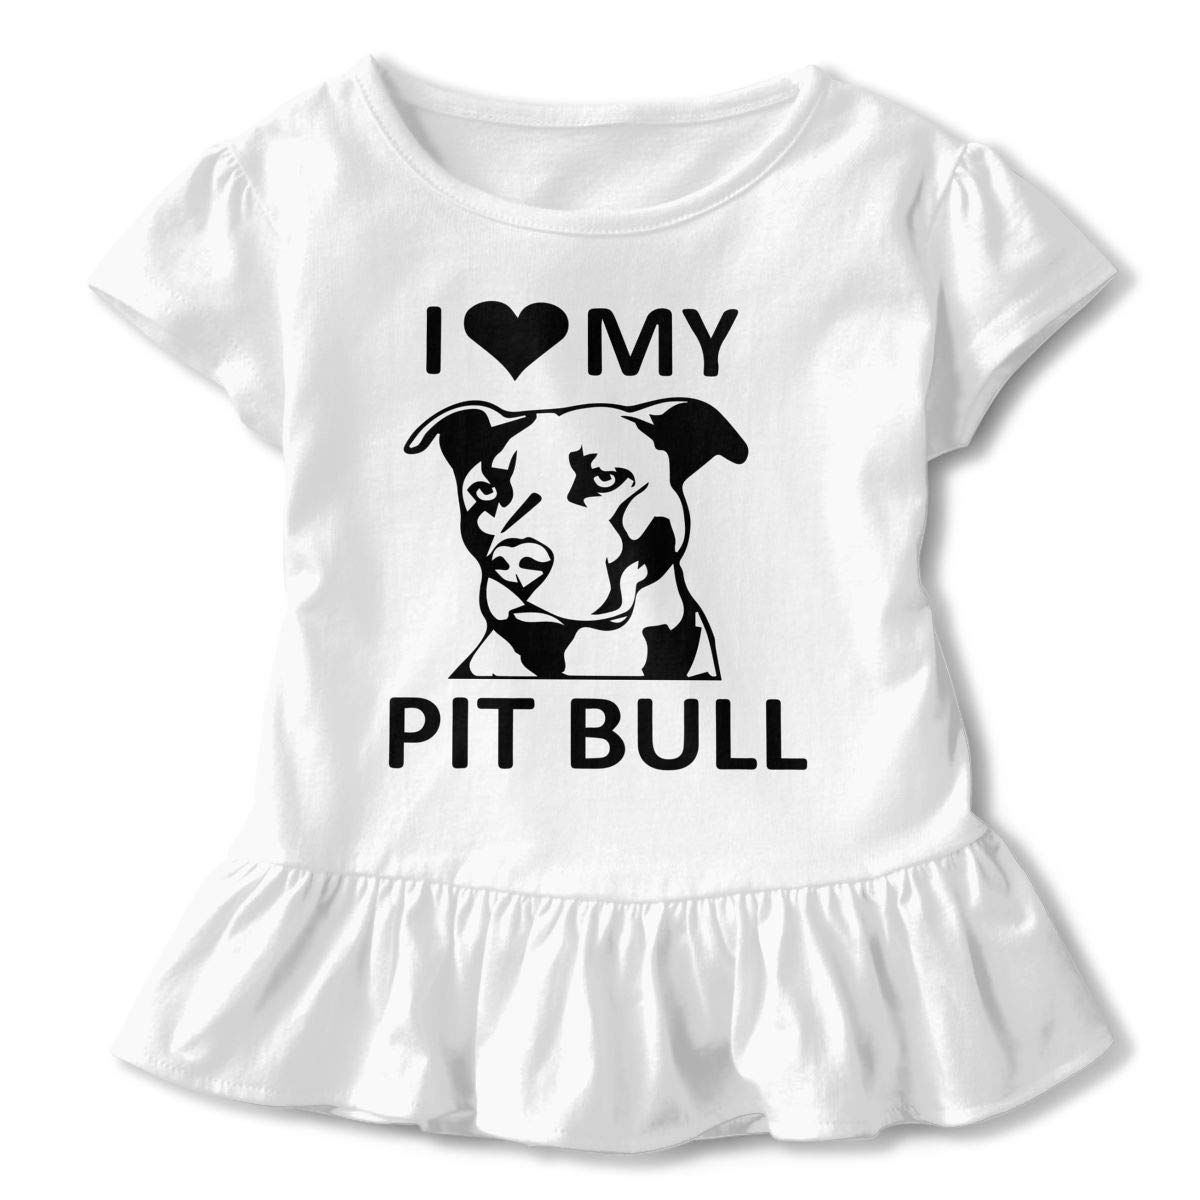 Iheart My Pitbull Kids Children Crew Neck Tee Help Shirt